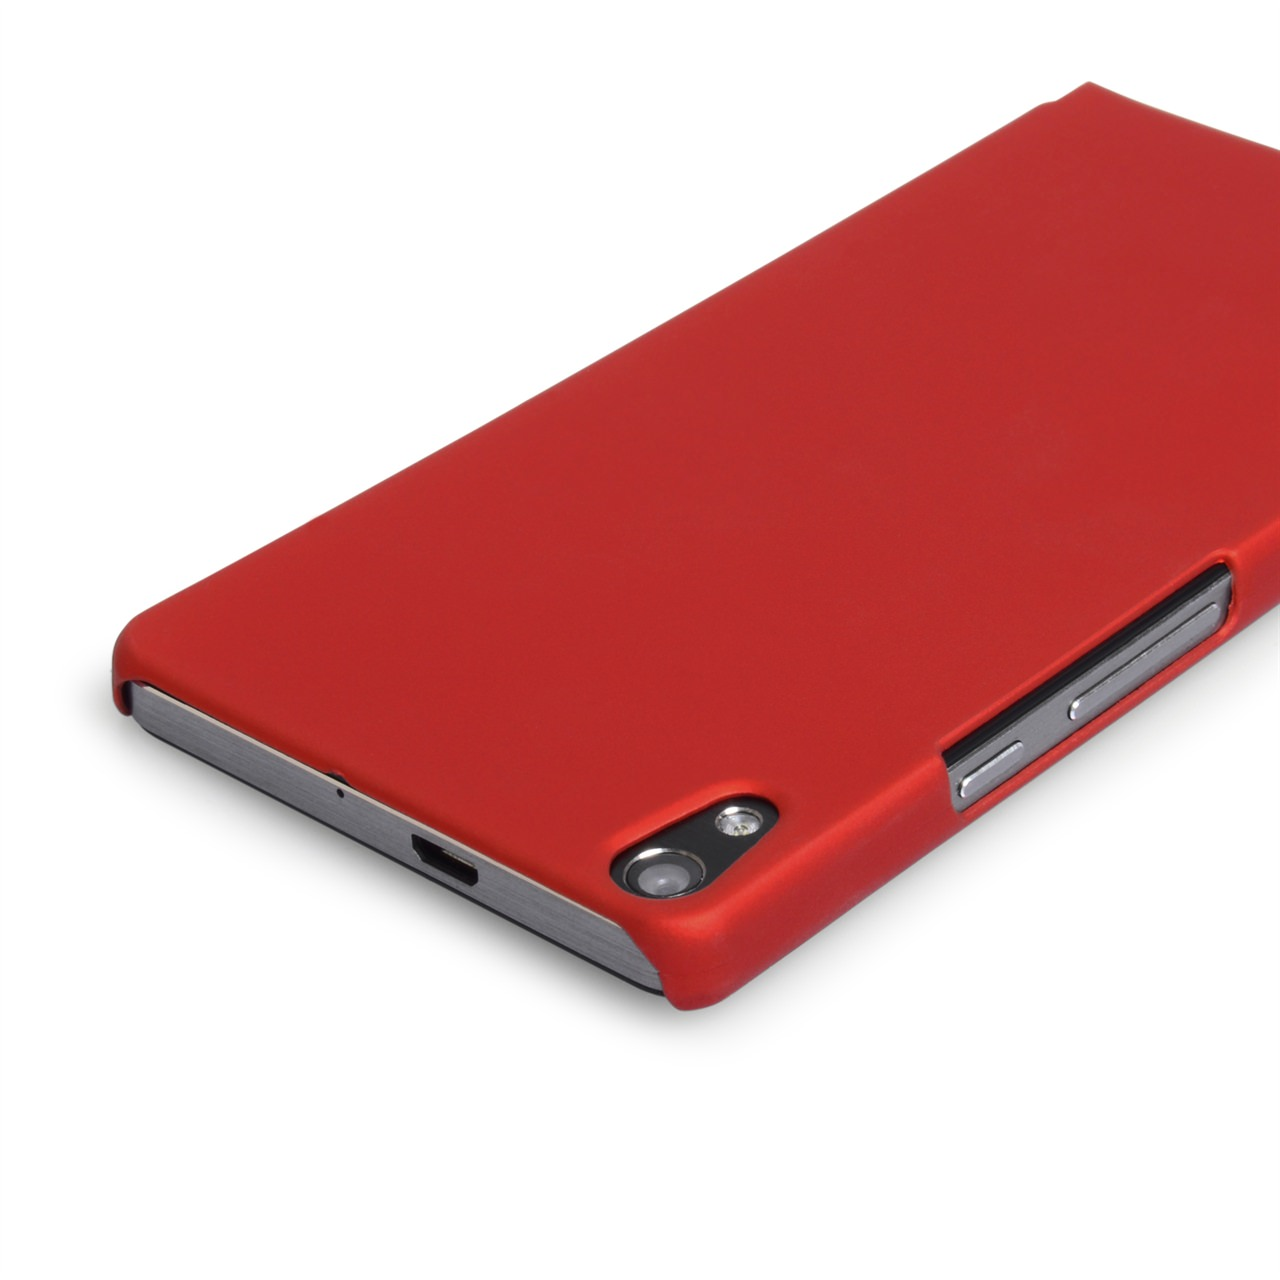 YouSave Accessories Huawei Ascend P6 Red Hybrid Hard Case